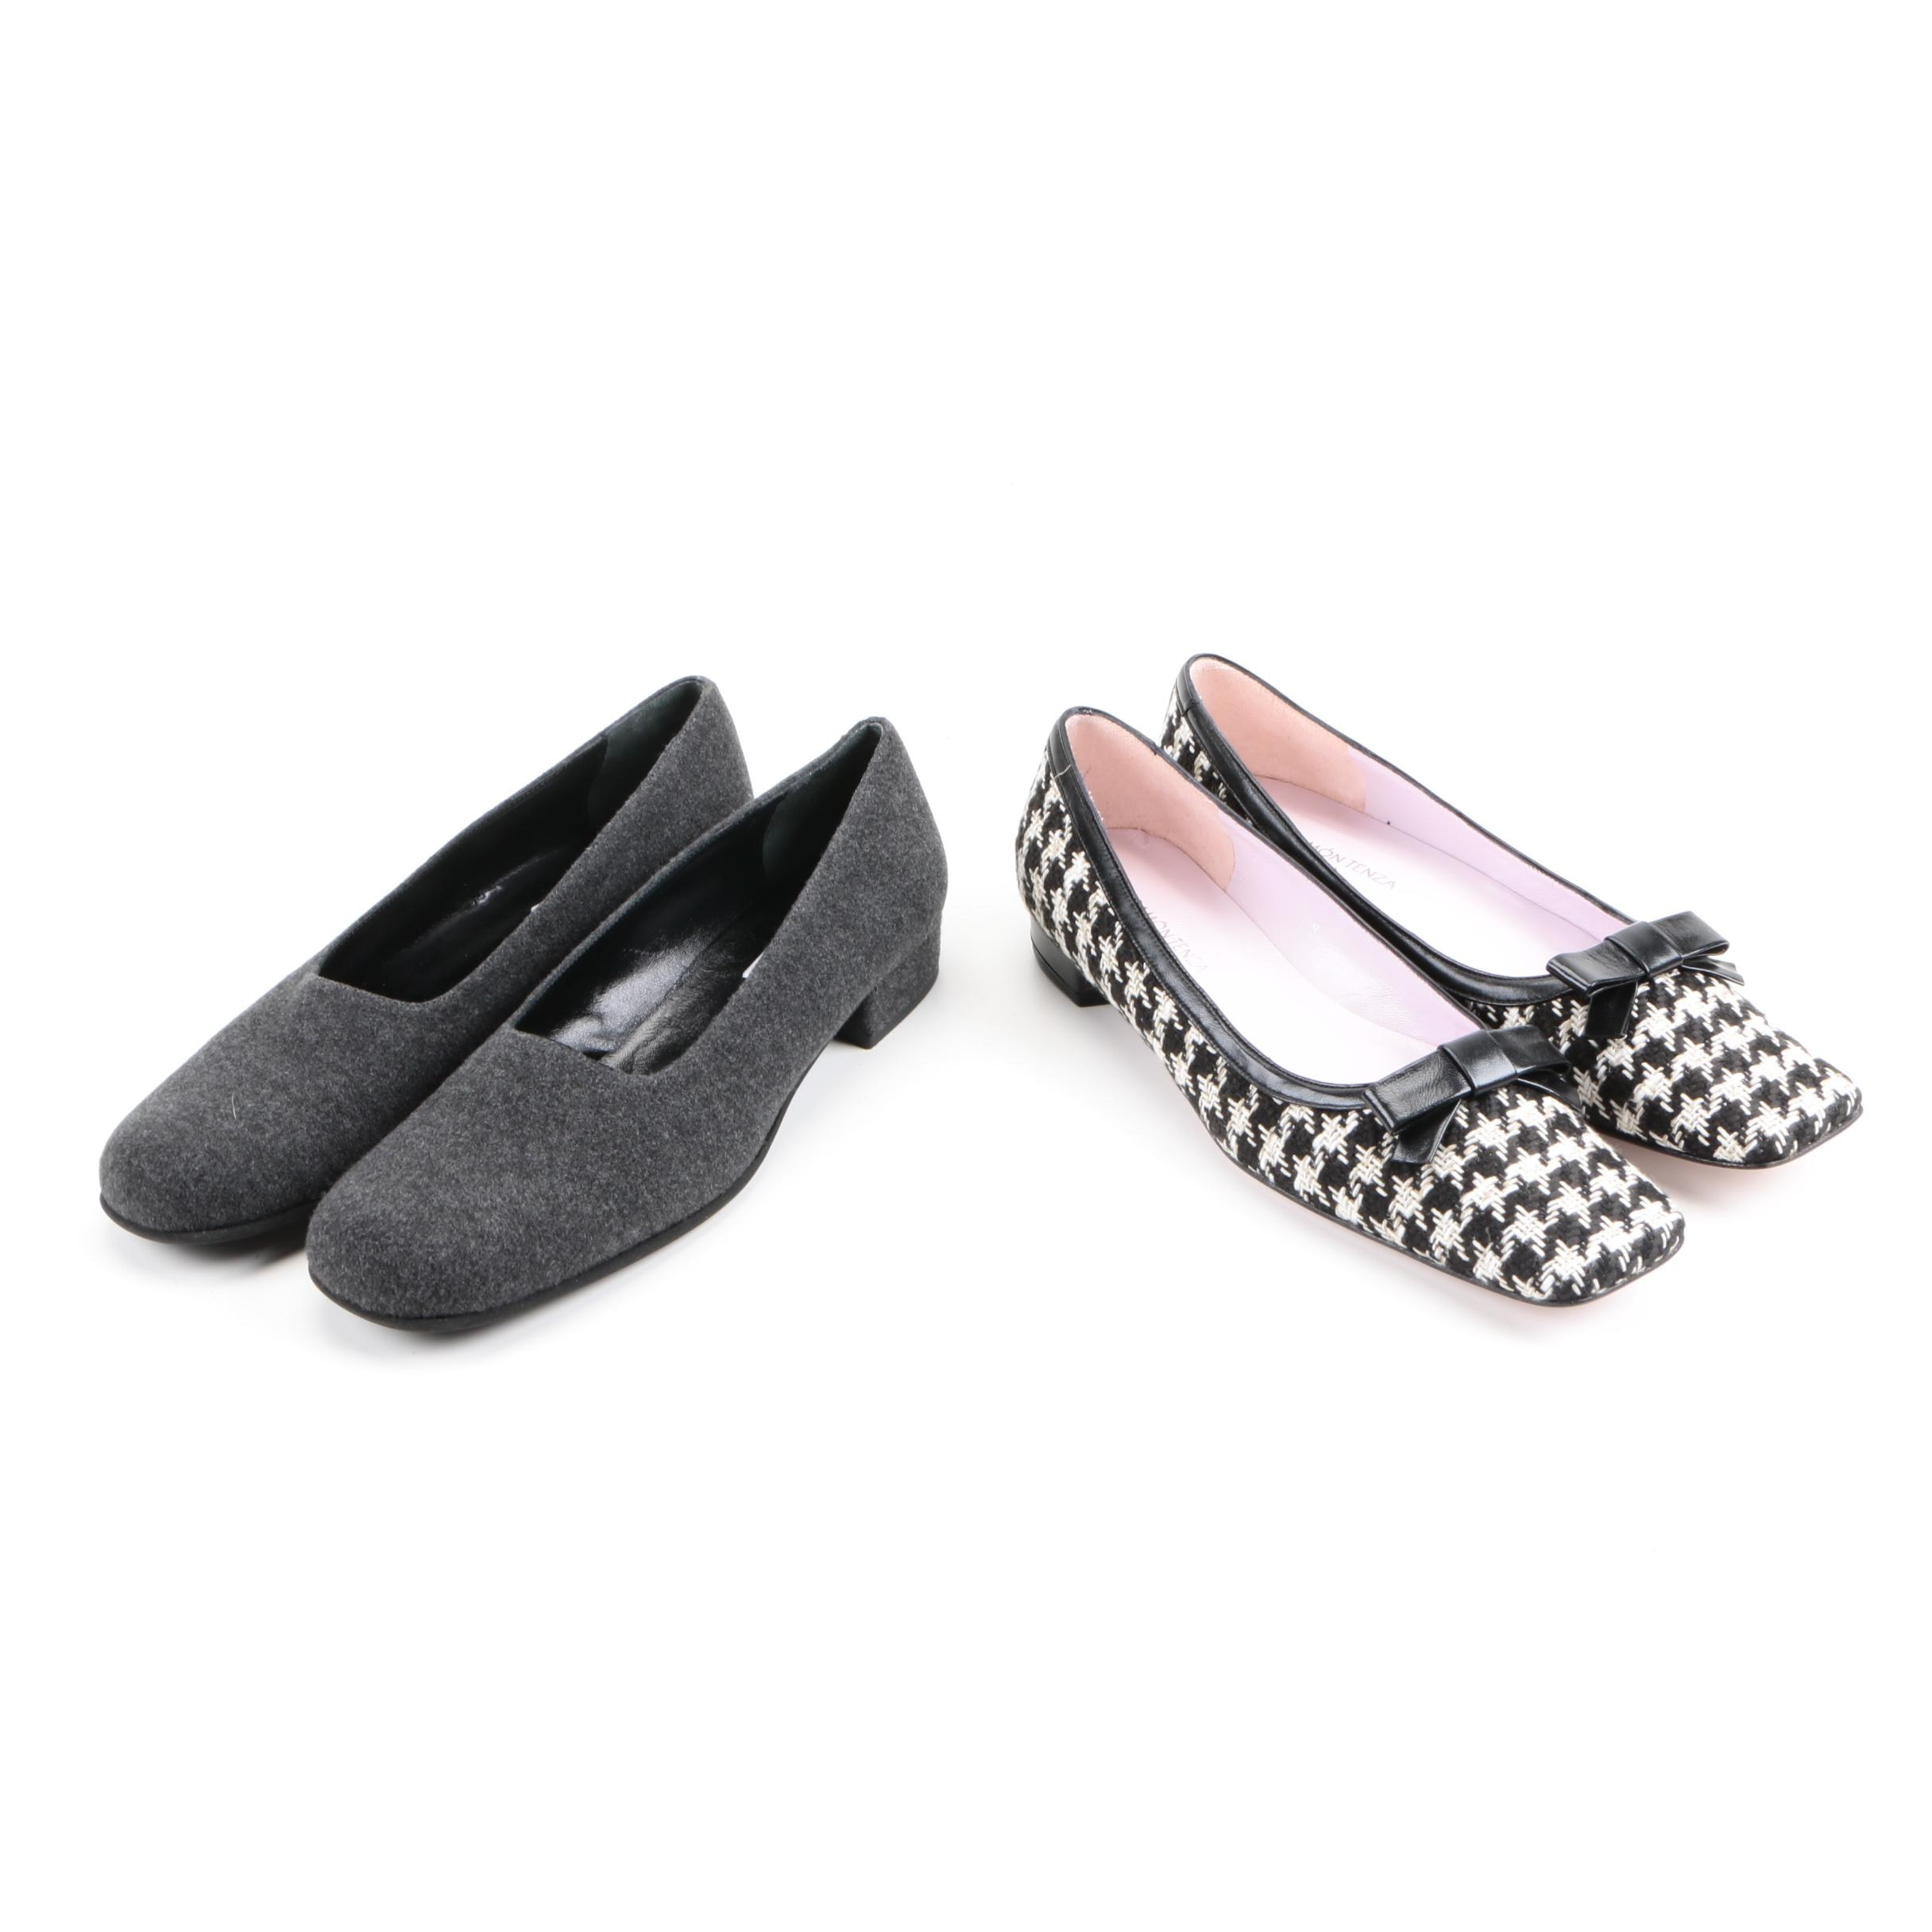 Ramón Tenza and Preview Collection Women's Shoes